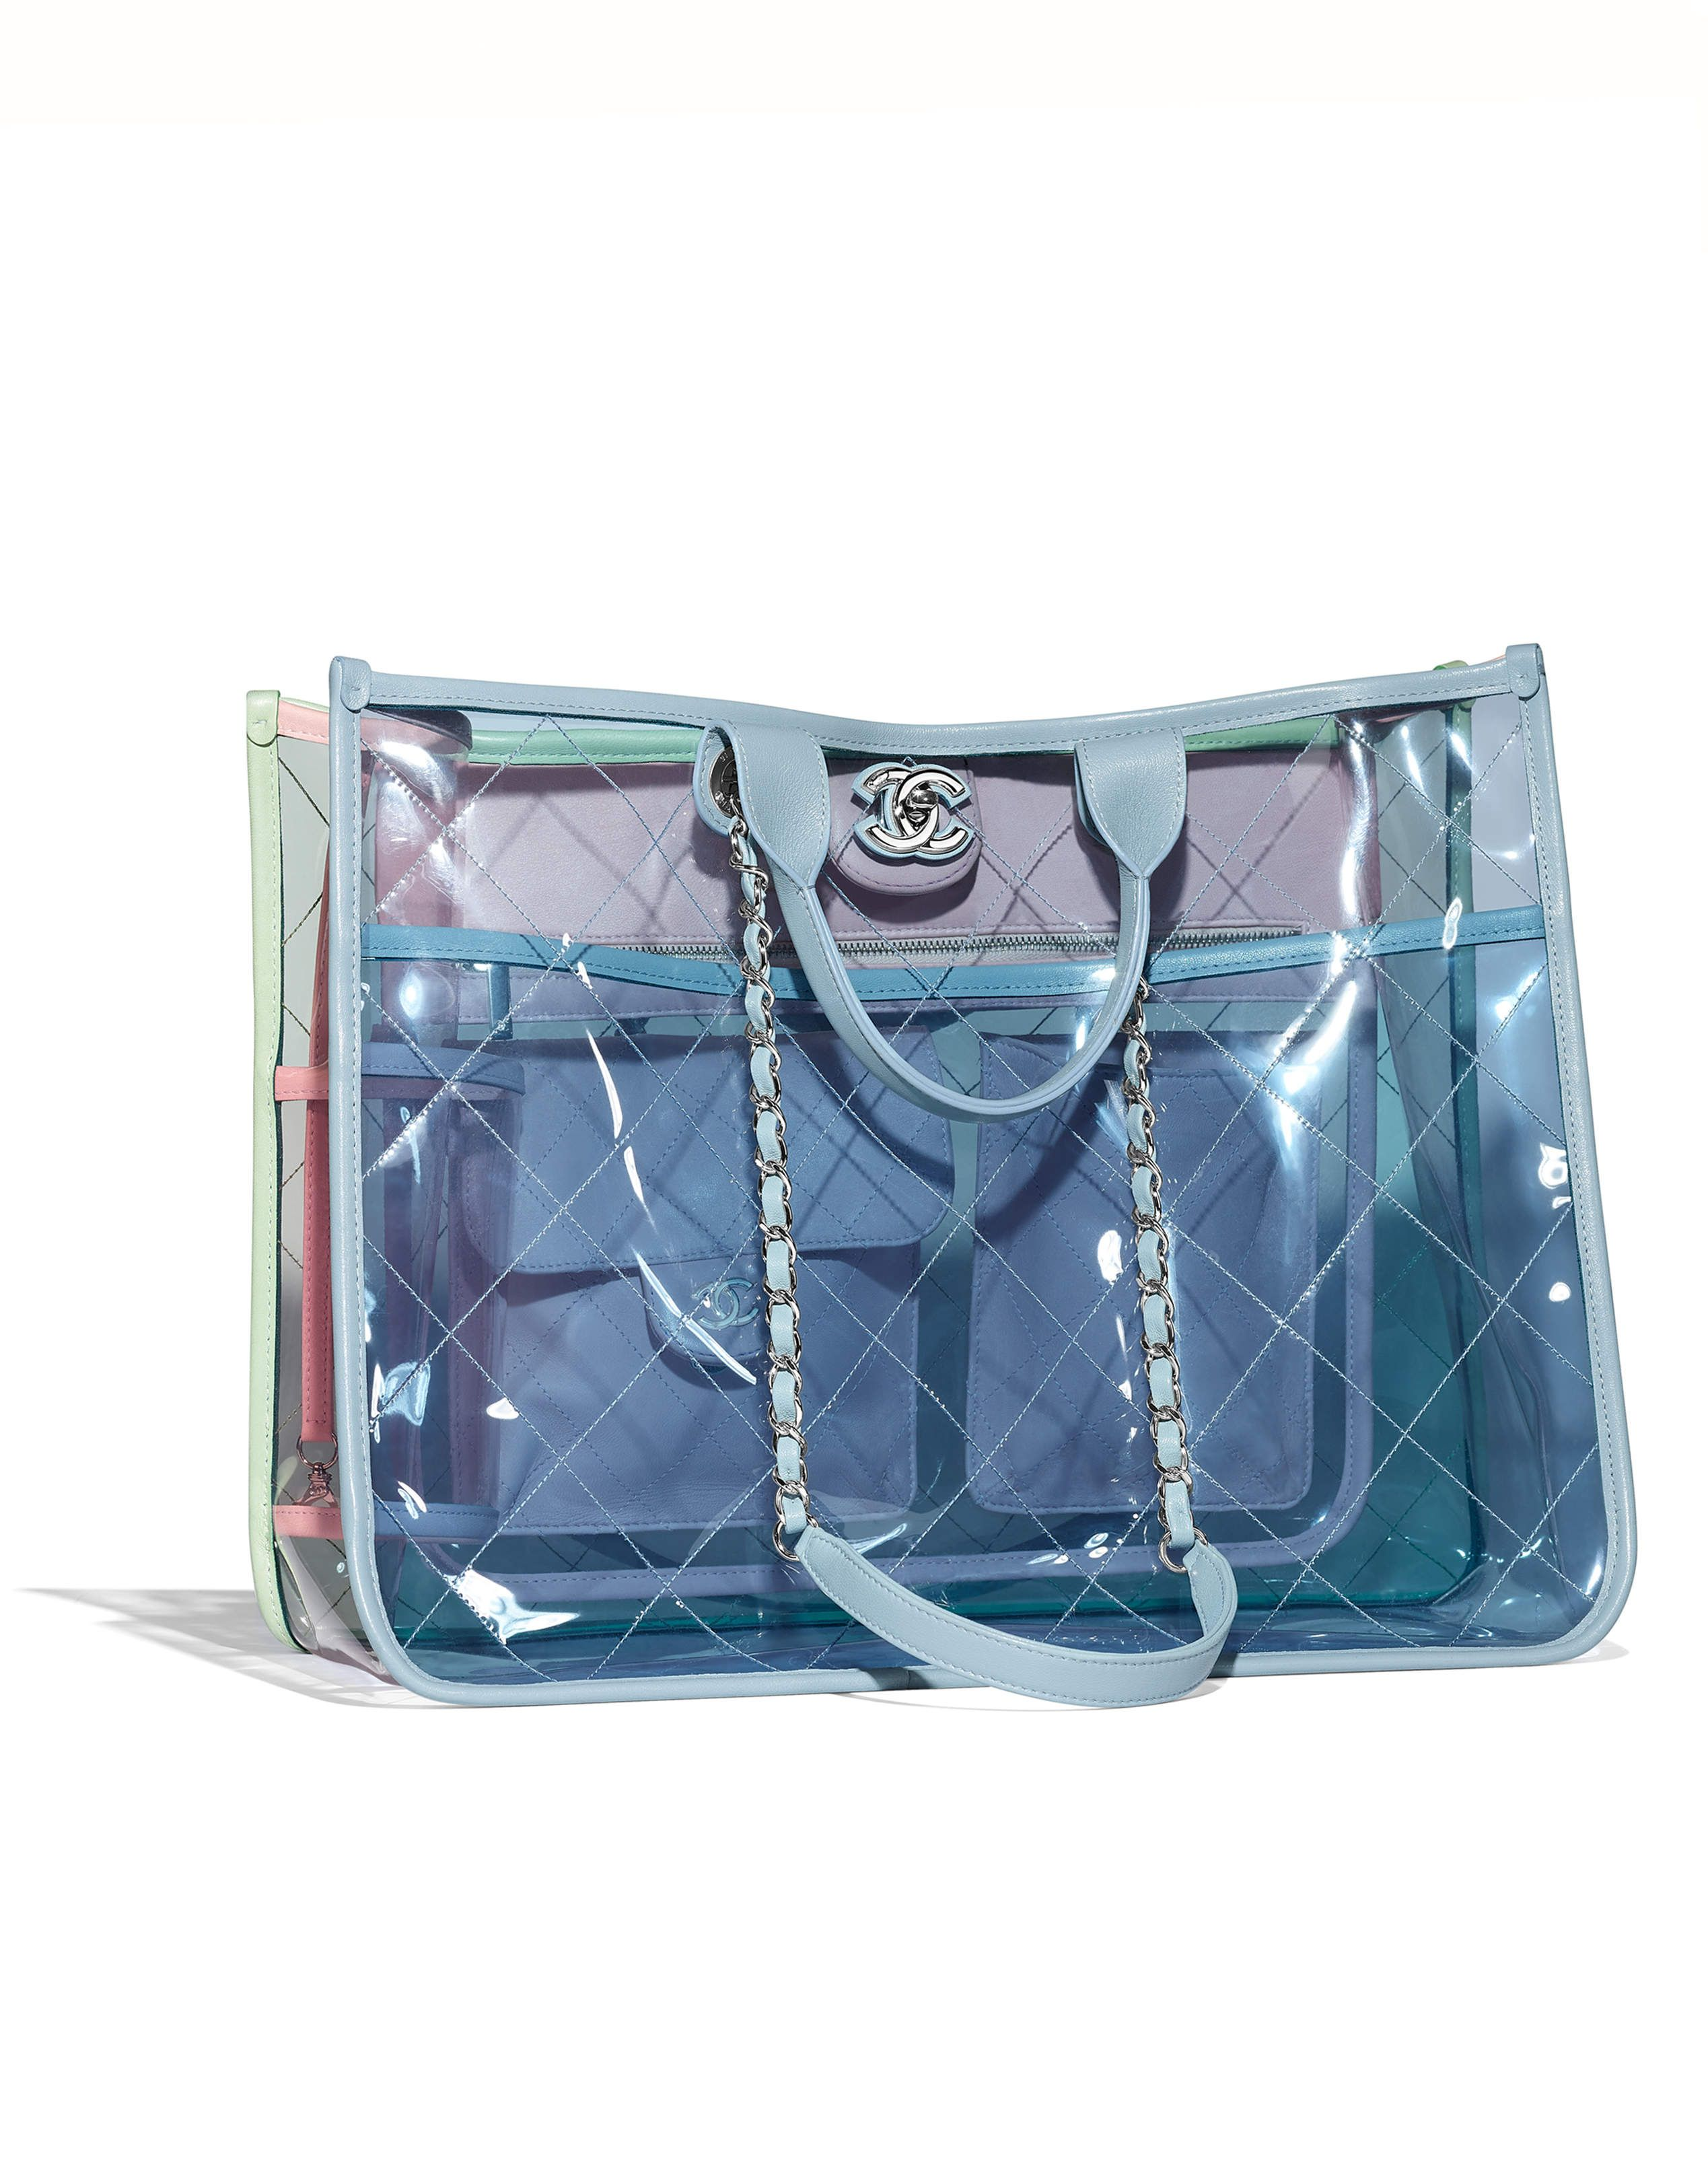 75e8519b6 Chanel - SS2018 | Blue, green & pink PVC large shopping bag | BAGS ...